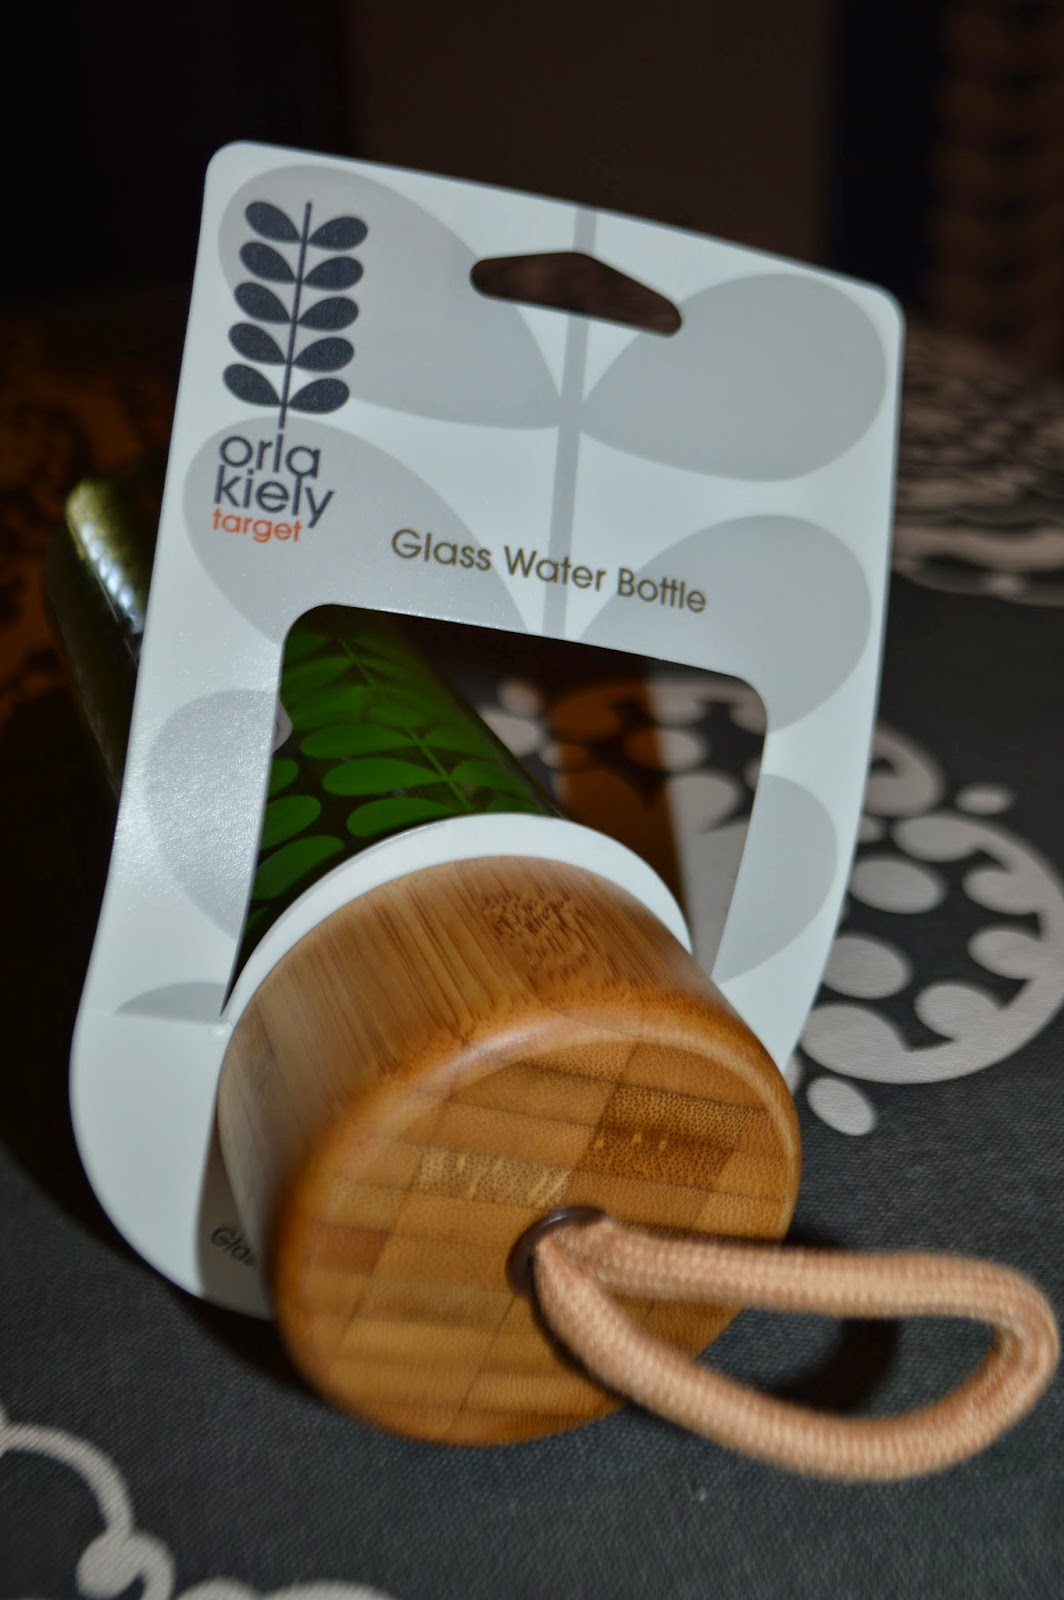 The Bamboo Gl Waterbottles Come In Grey Green And Rose Sixties Stem Print